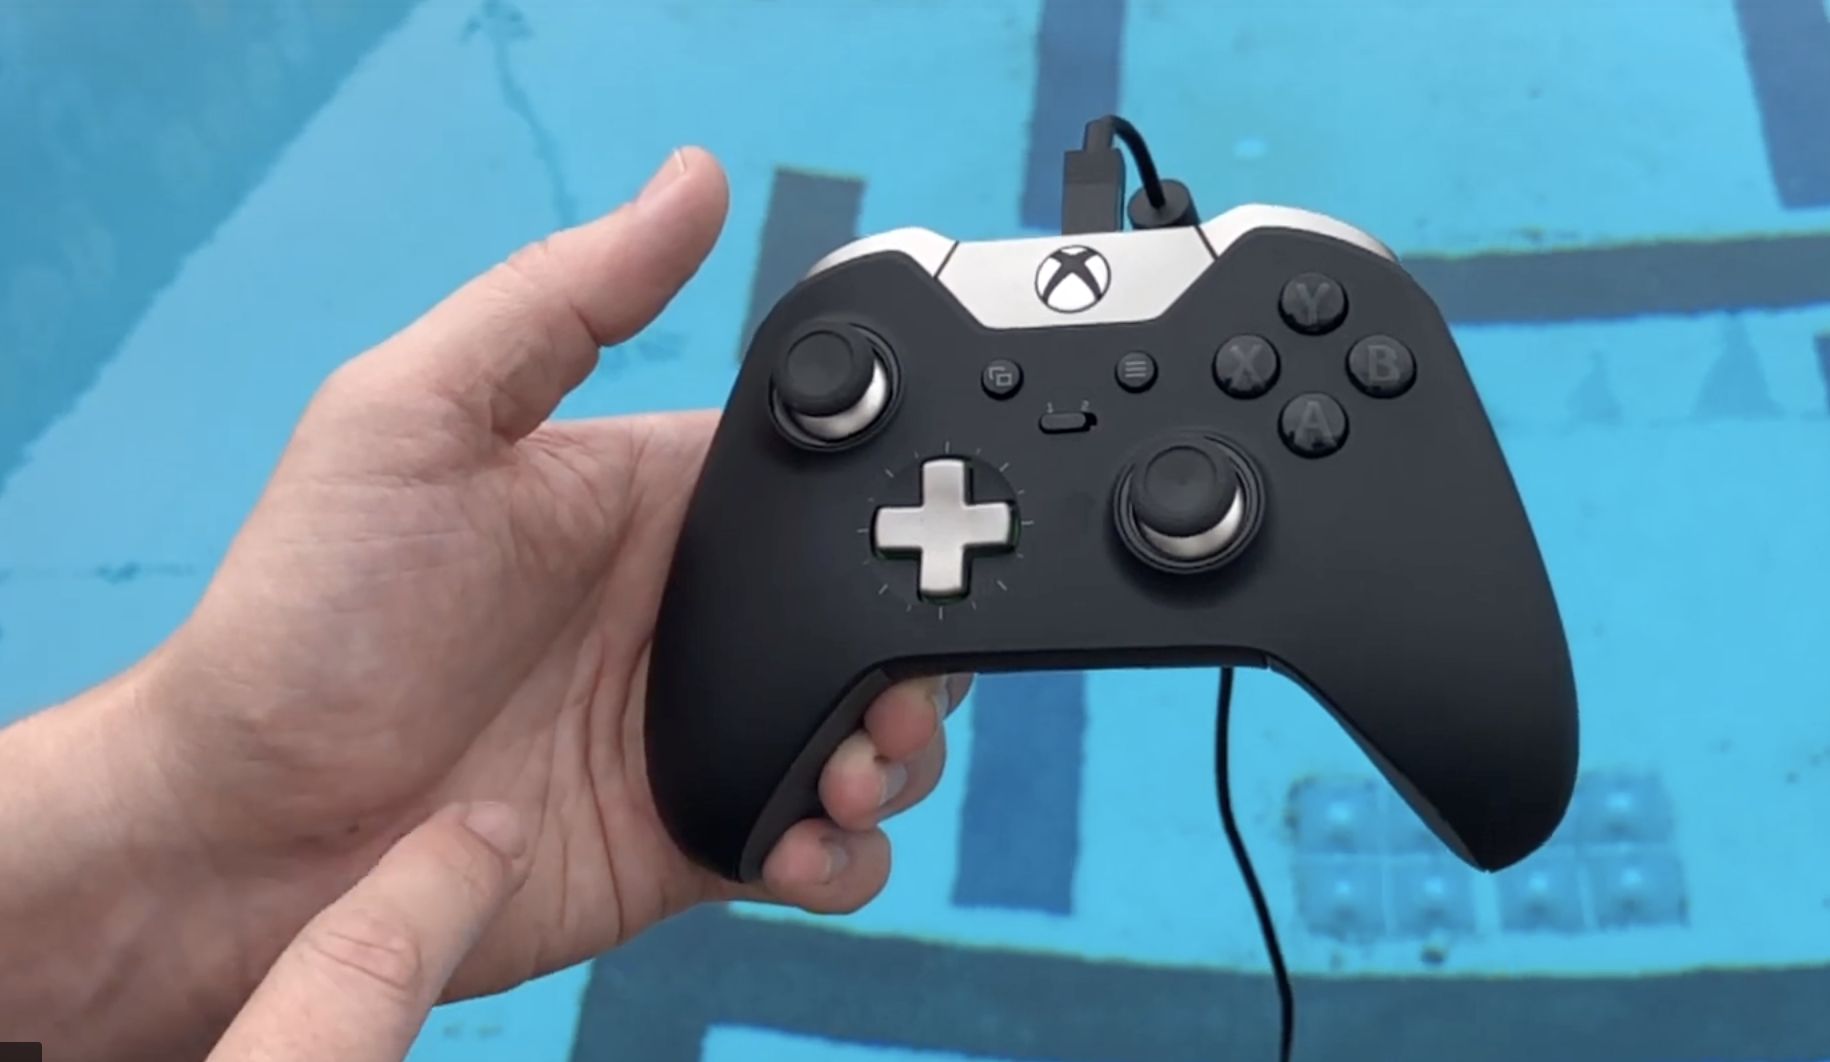 SRV-8 remotely operated underwater vehicle xbox controller functions